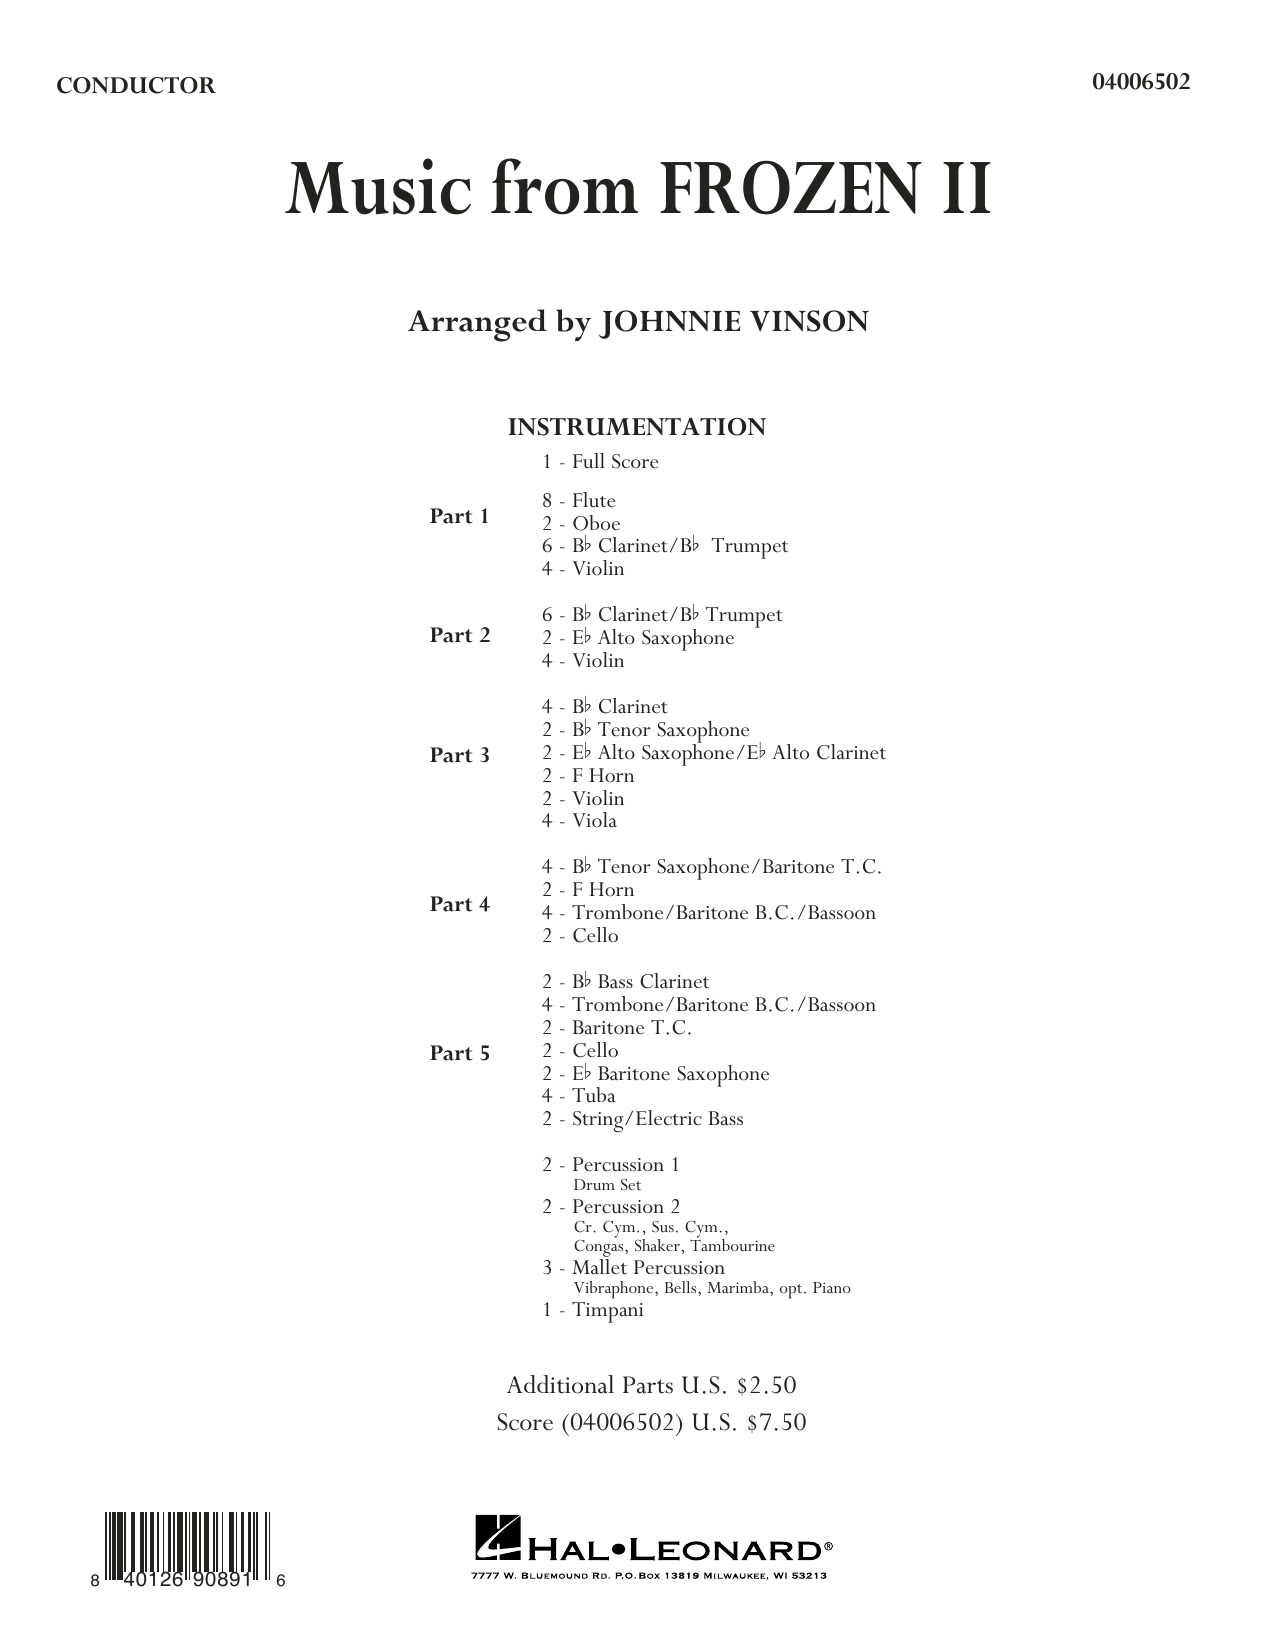 Kristen Anderson-Lopez & Robert Lopez Music from Disney's Frozen 2 (arr. Johnnie Vinson) - Conductor Score (Full Score) sheet music notes and chords. Download Printable PDF.